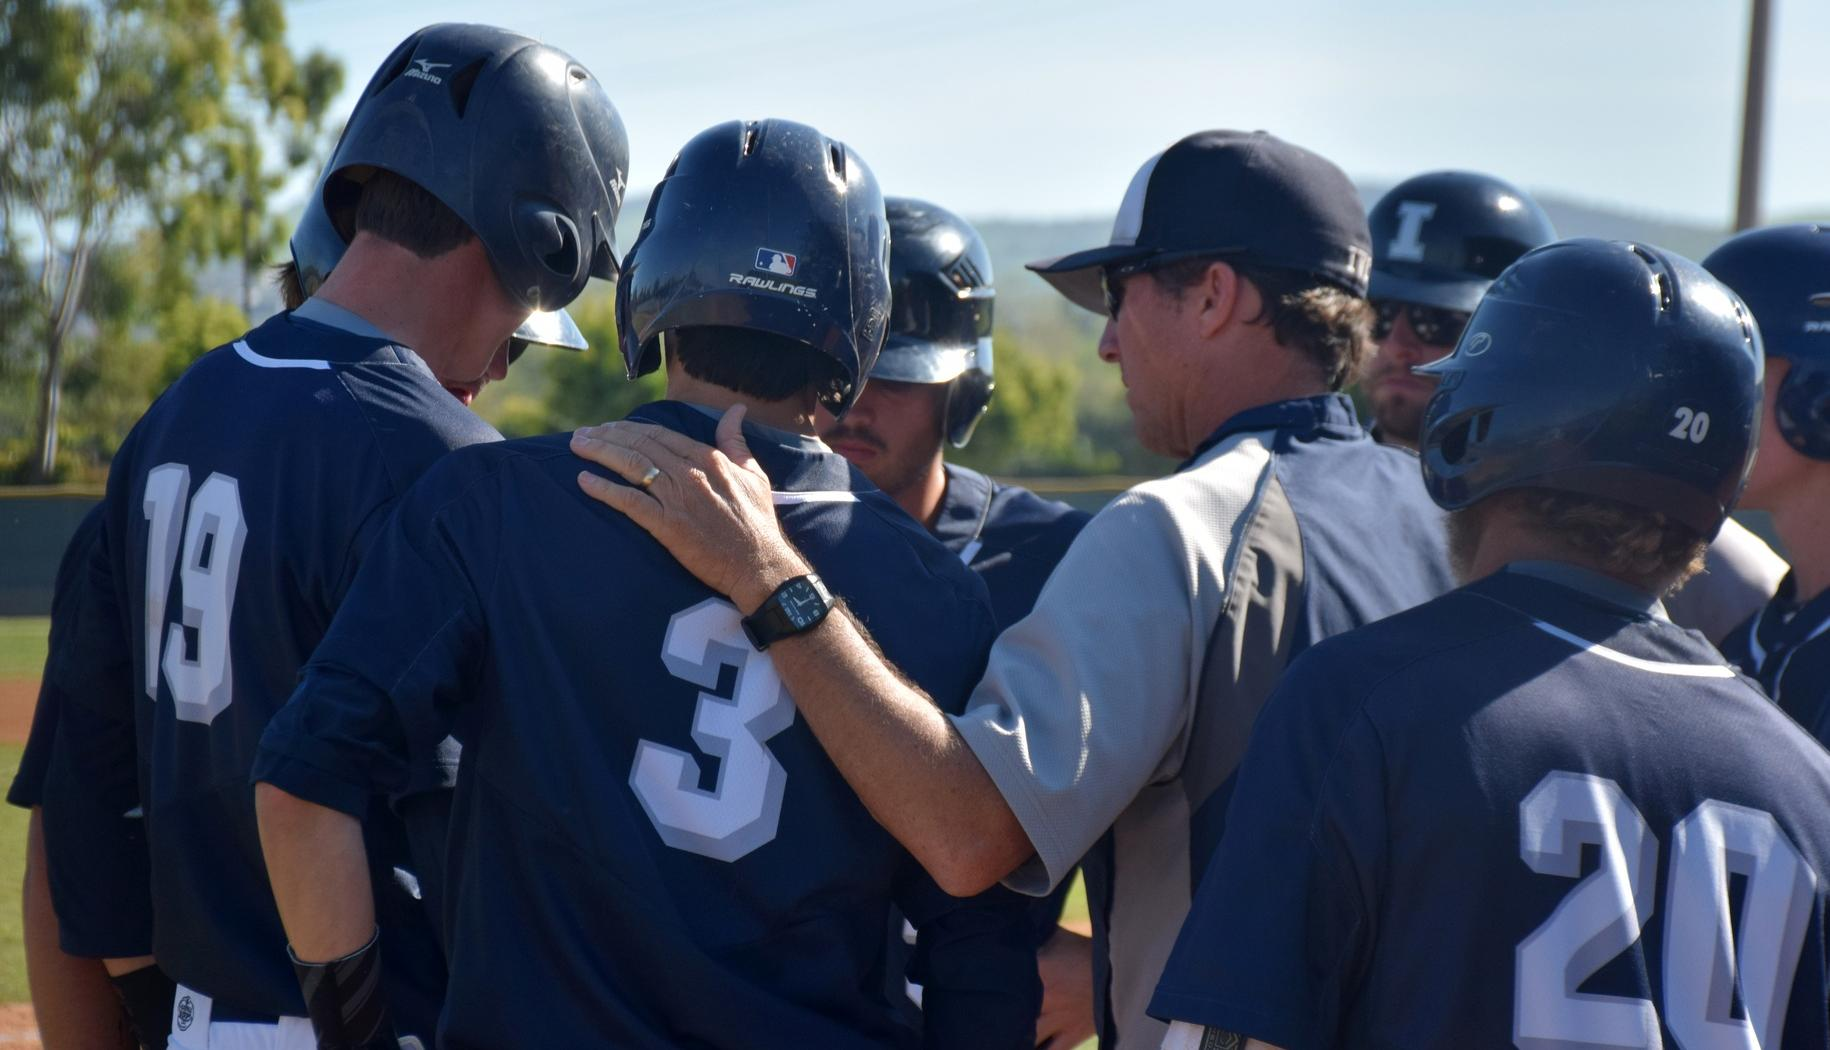 Baseball team ranked No. 12 in So. Cal. again in latest poll